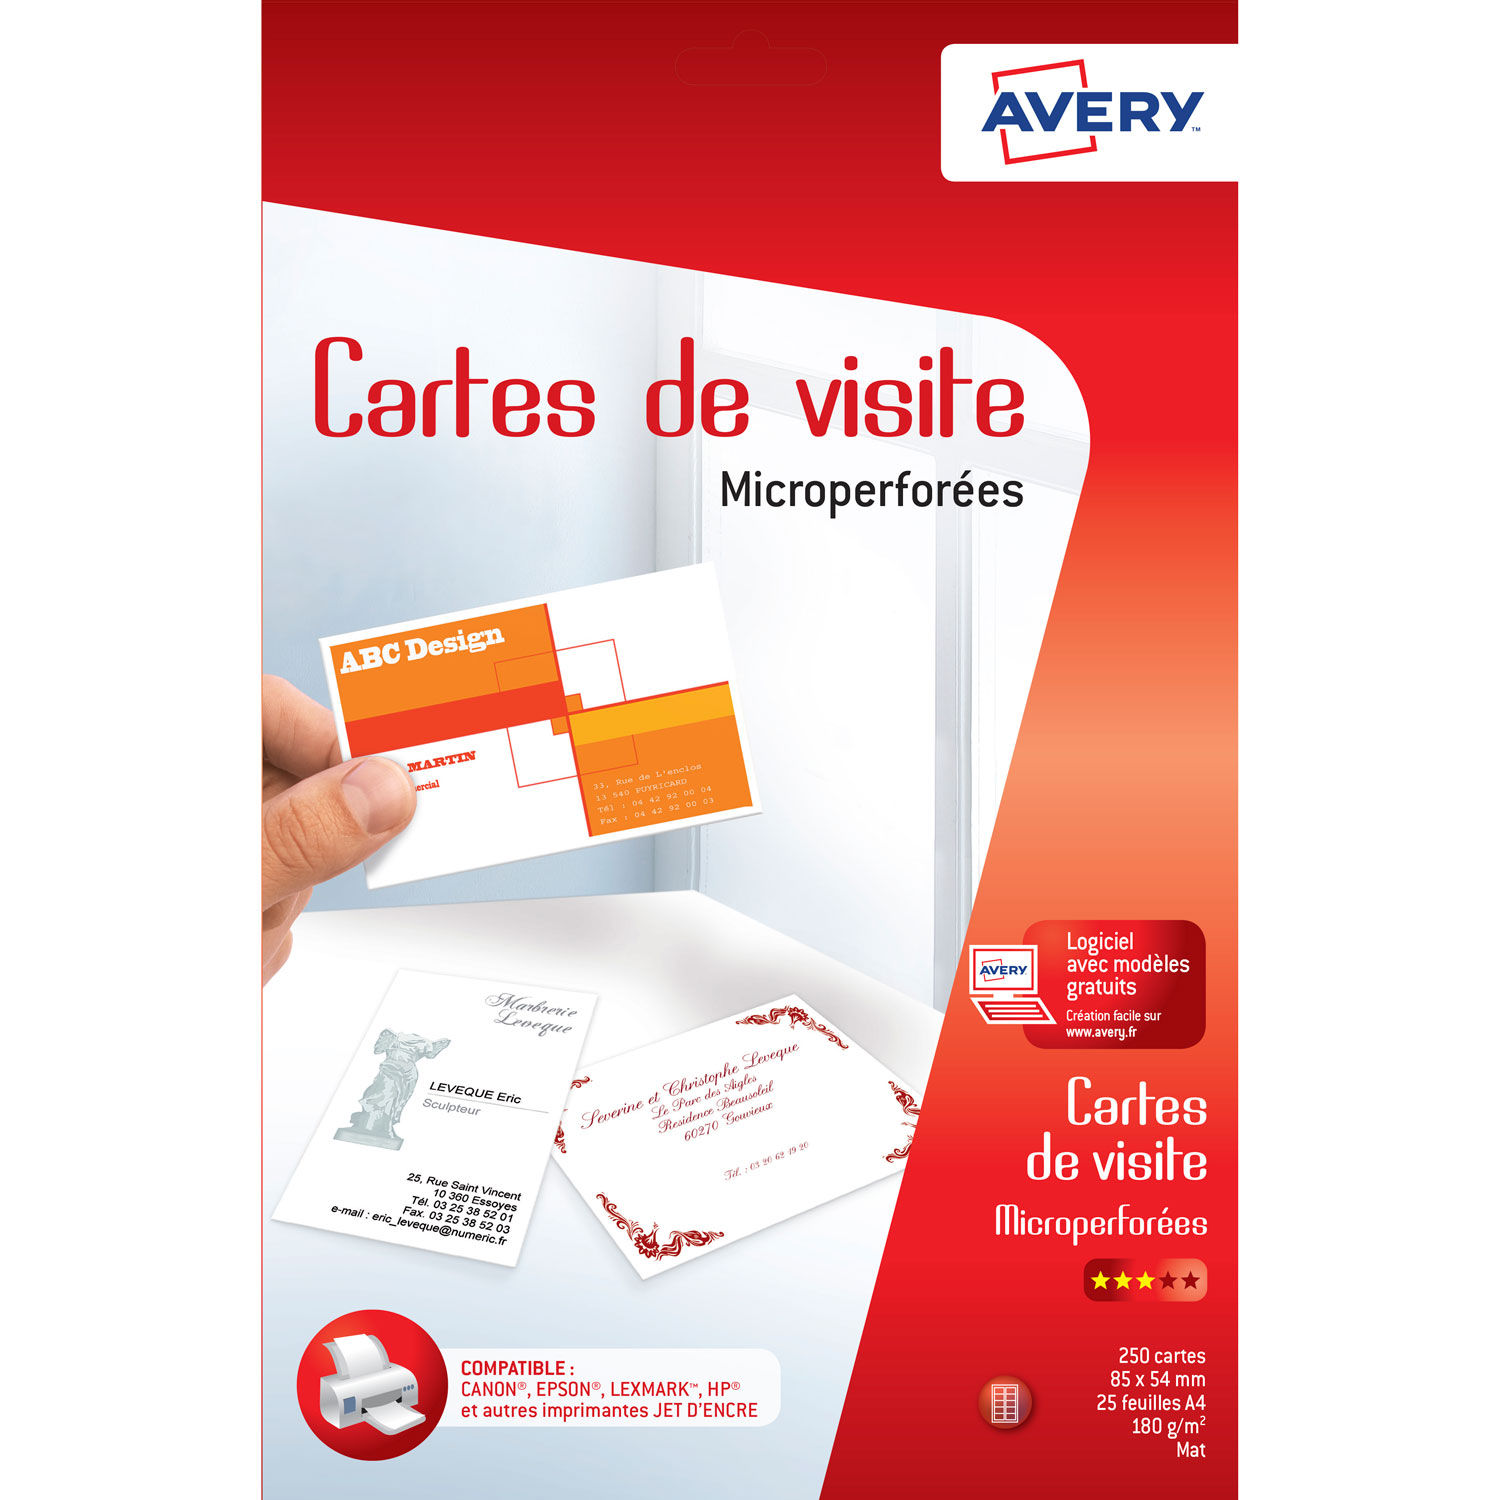 Avery 100 Cartes De Visite Microperforees 185g Blanc Mat